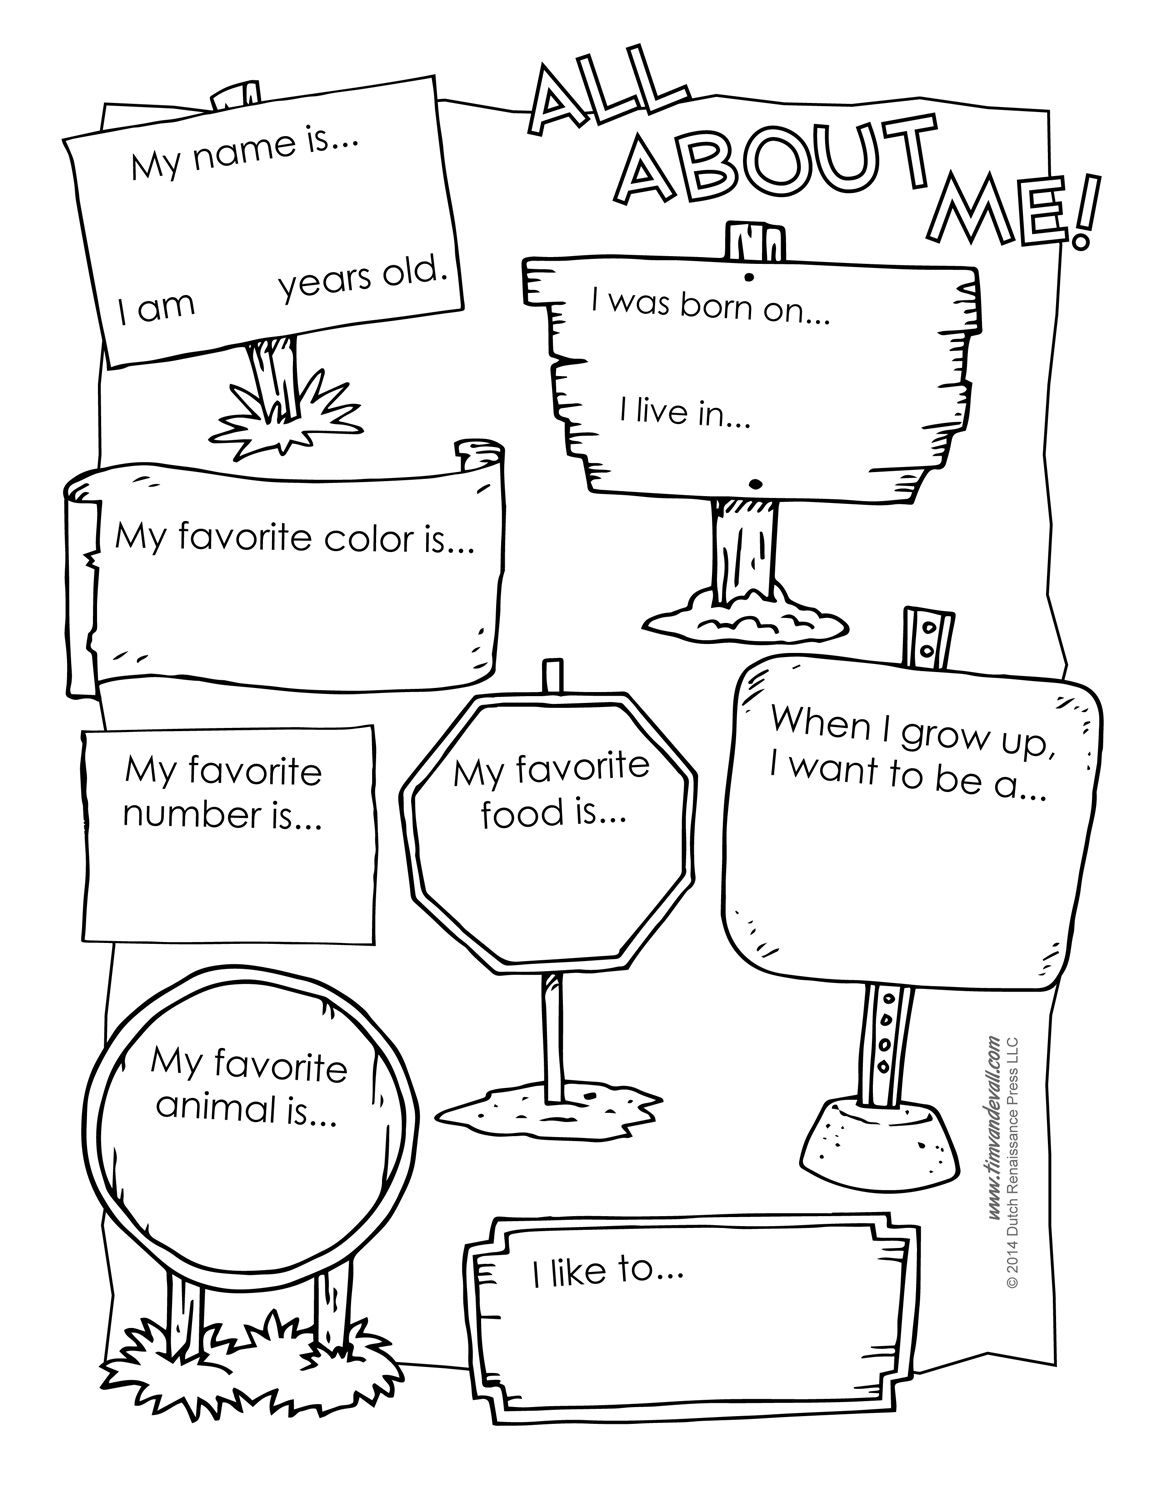 hight resolution of All About Me Worksheet Printable   All about me worksheet